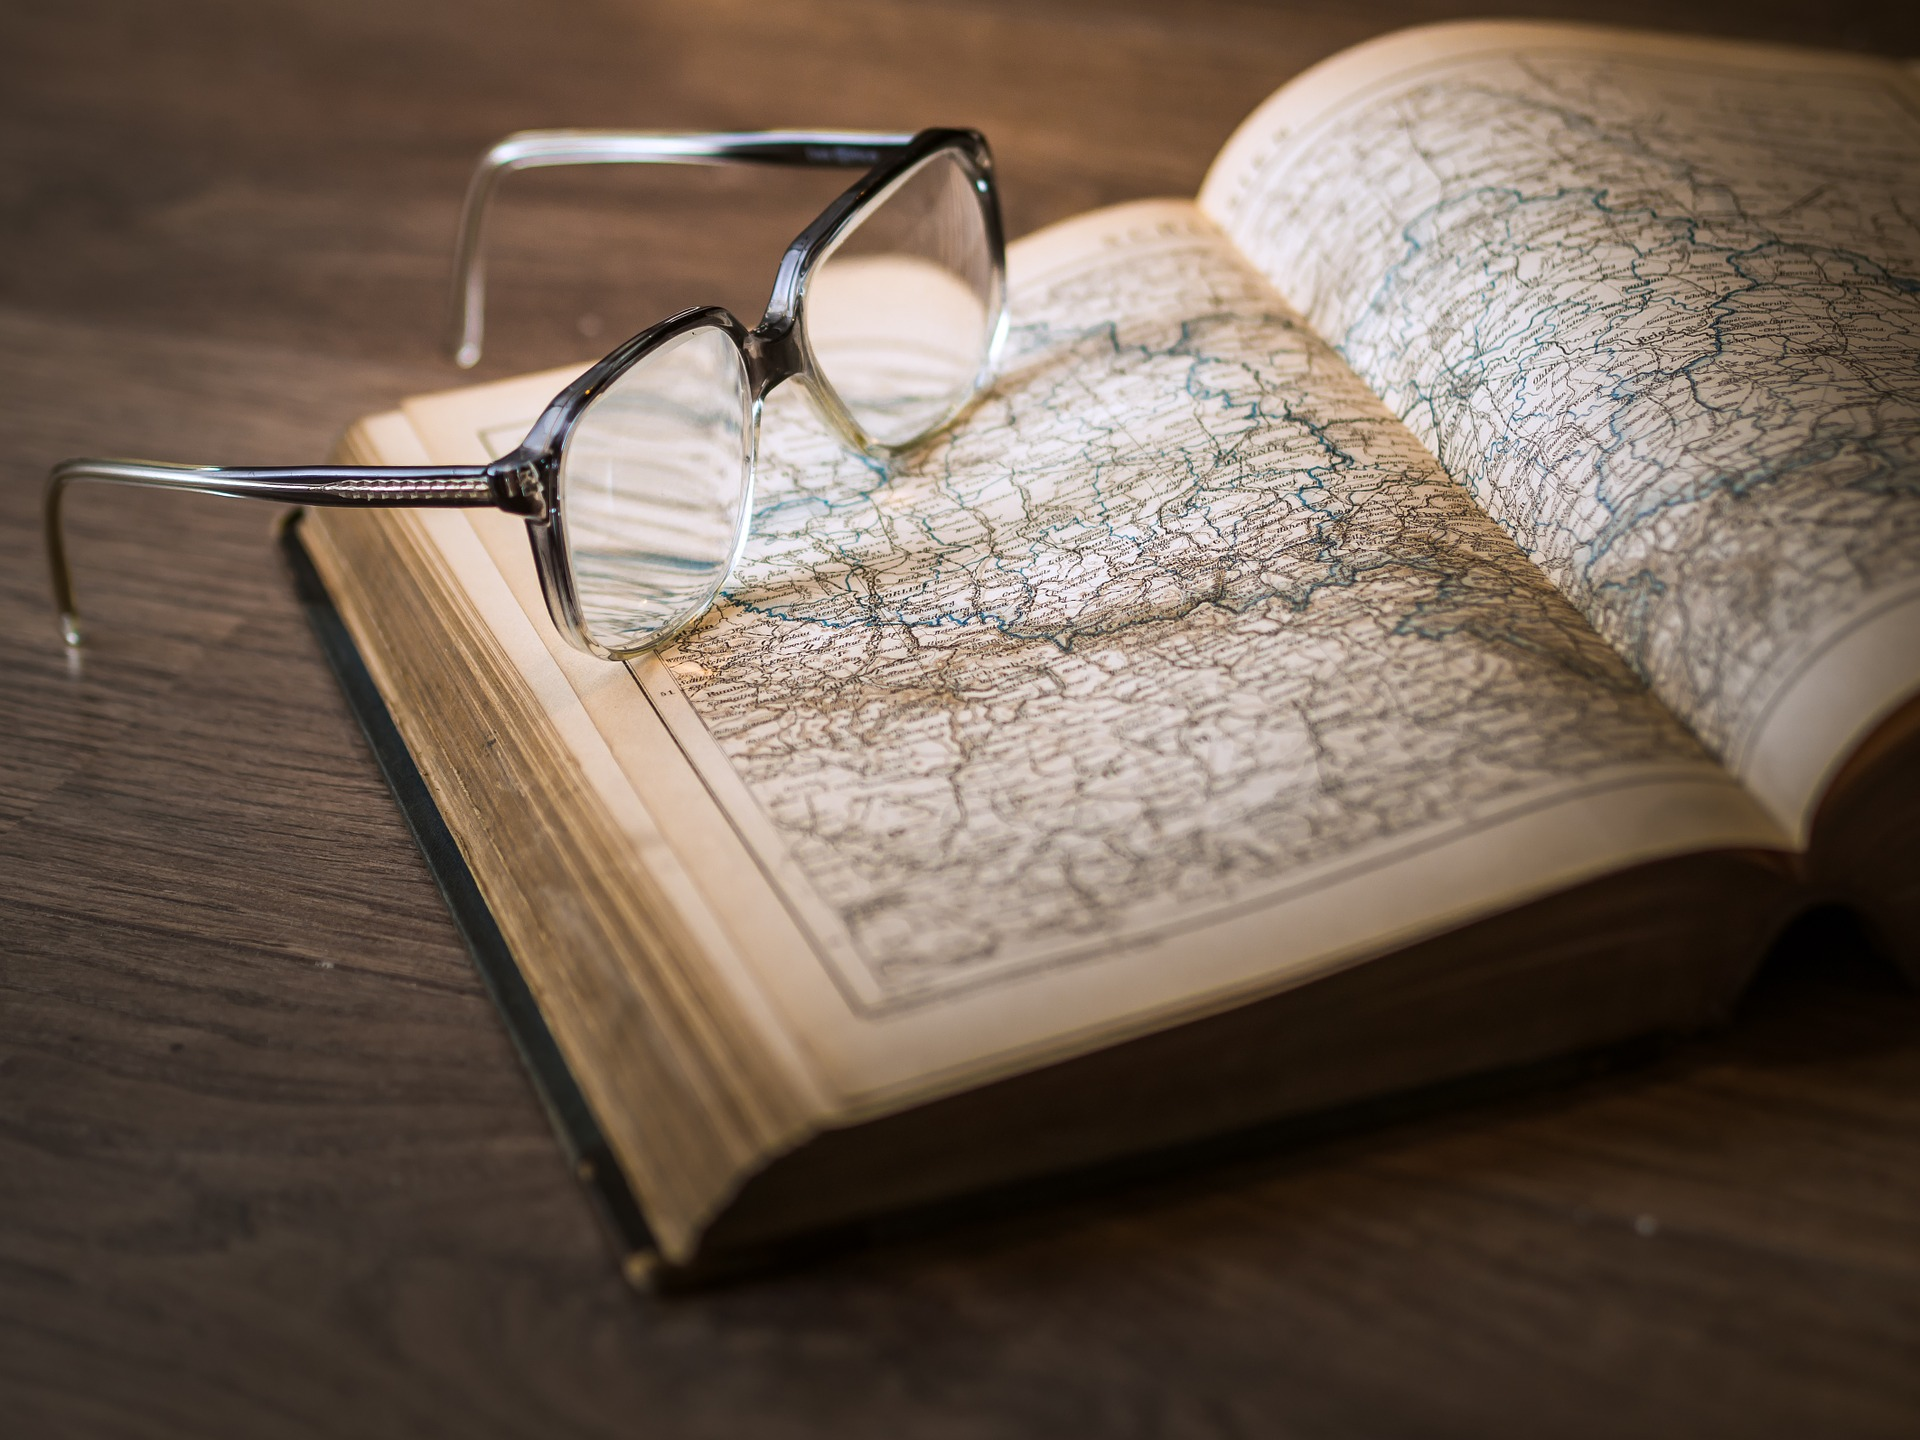 This is a great idea for couples who love to go traveling together. You just need to buy a map or a globe onto which you can then pin a tack into all the destinations and places that you see together. You could pin some of the spots you have already been to before you give it to your partner.